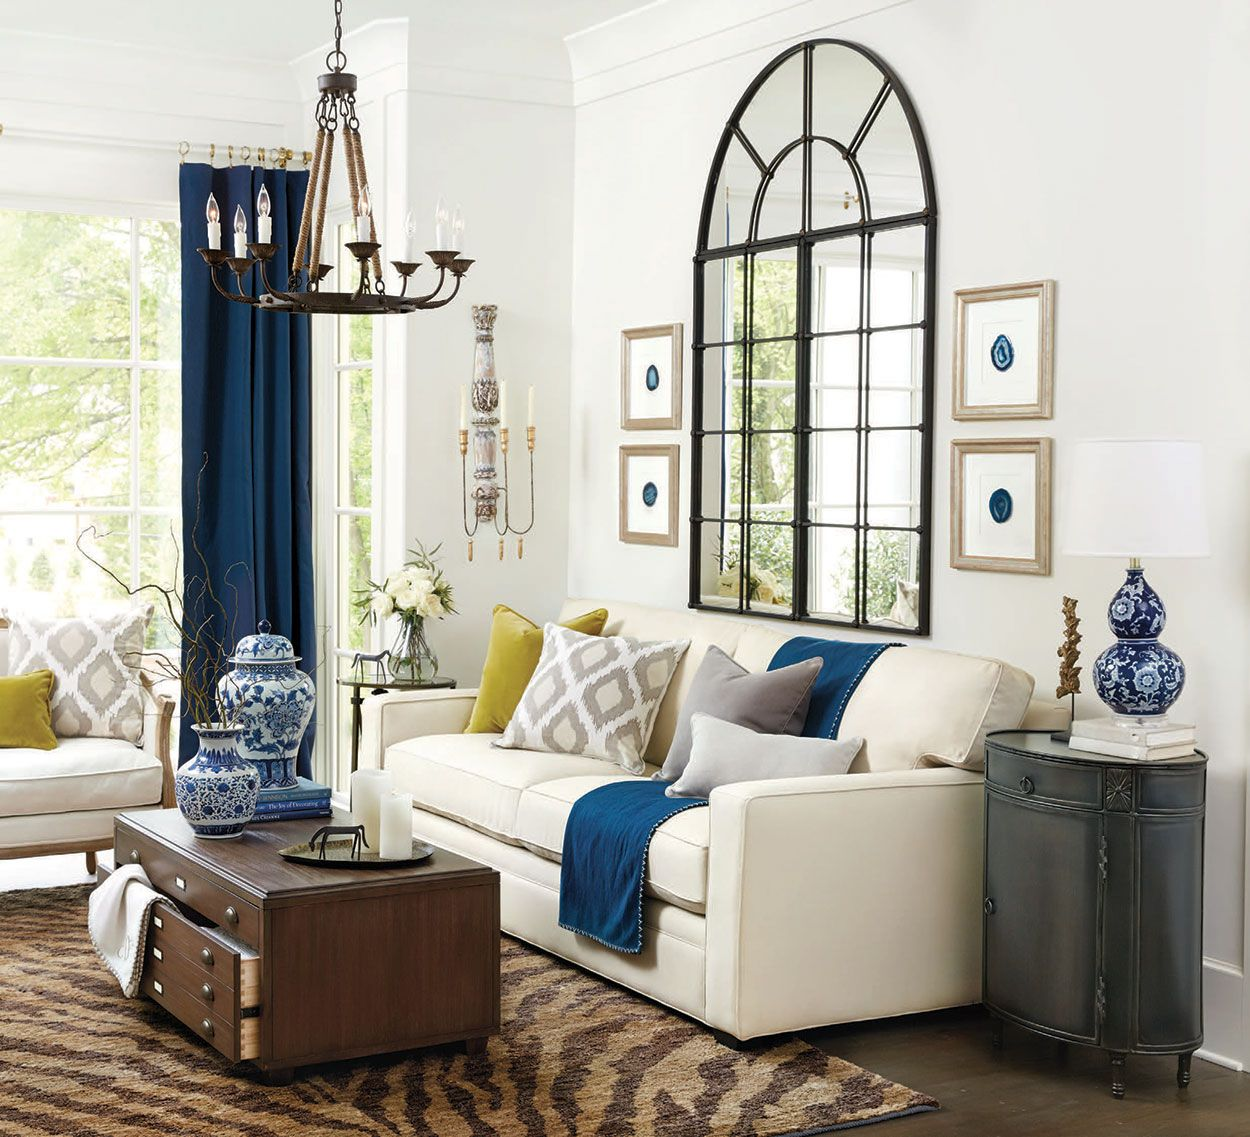 Living Rooms | Animal print rug, Chinoiserie and Living rooms